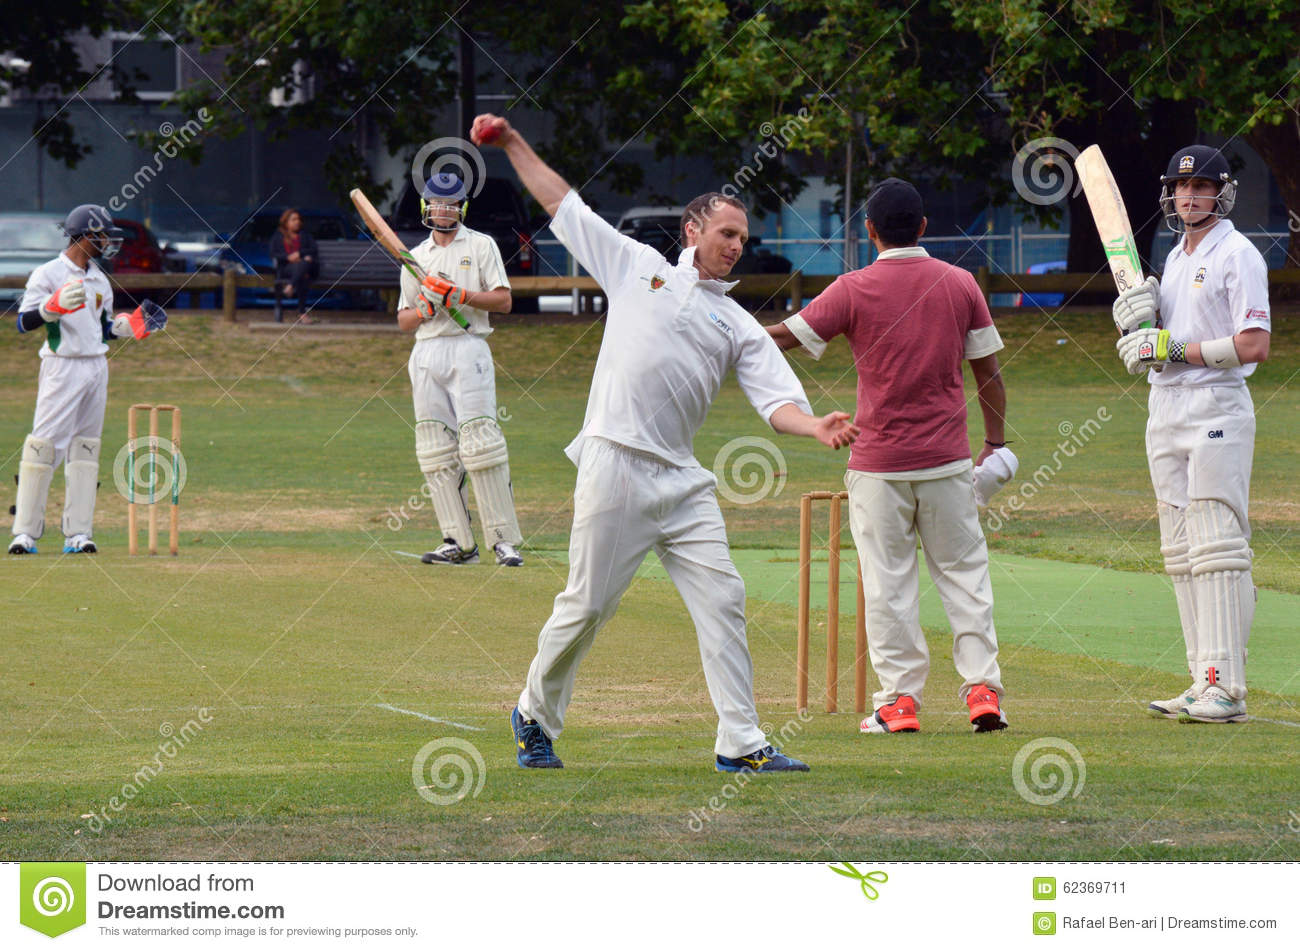 cricket terminology and bowler In cricket, a googly is a type of deceptive delivery bowled by a right-arm leg spin bowler in australia, it is occasionally referred to as a bosie (or bosey), an.